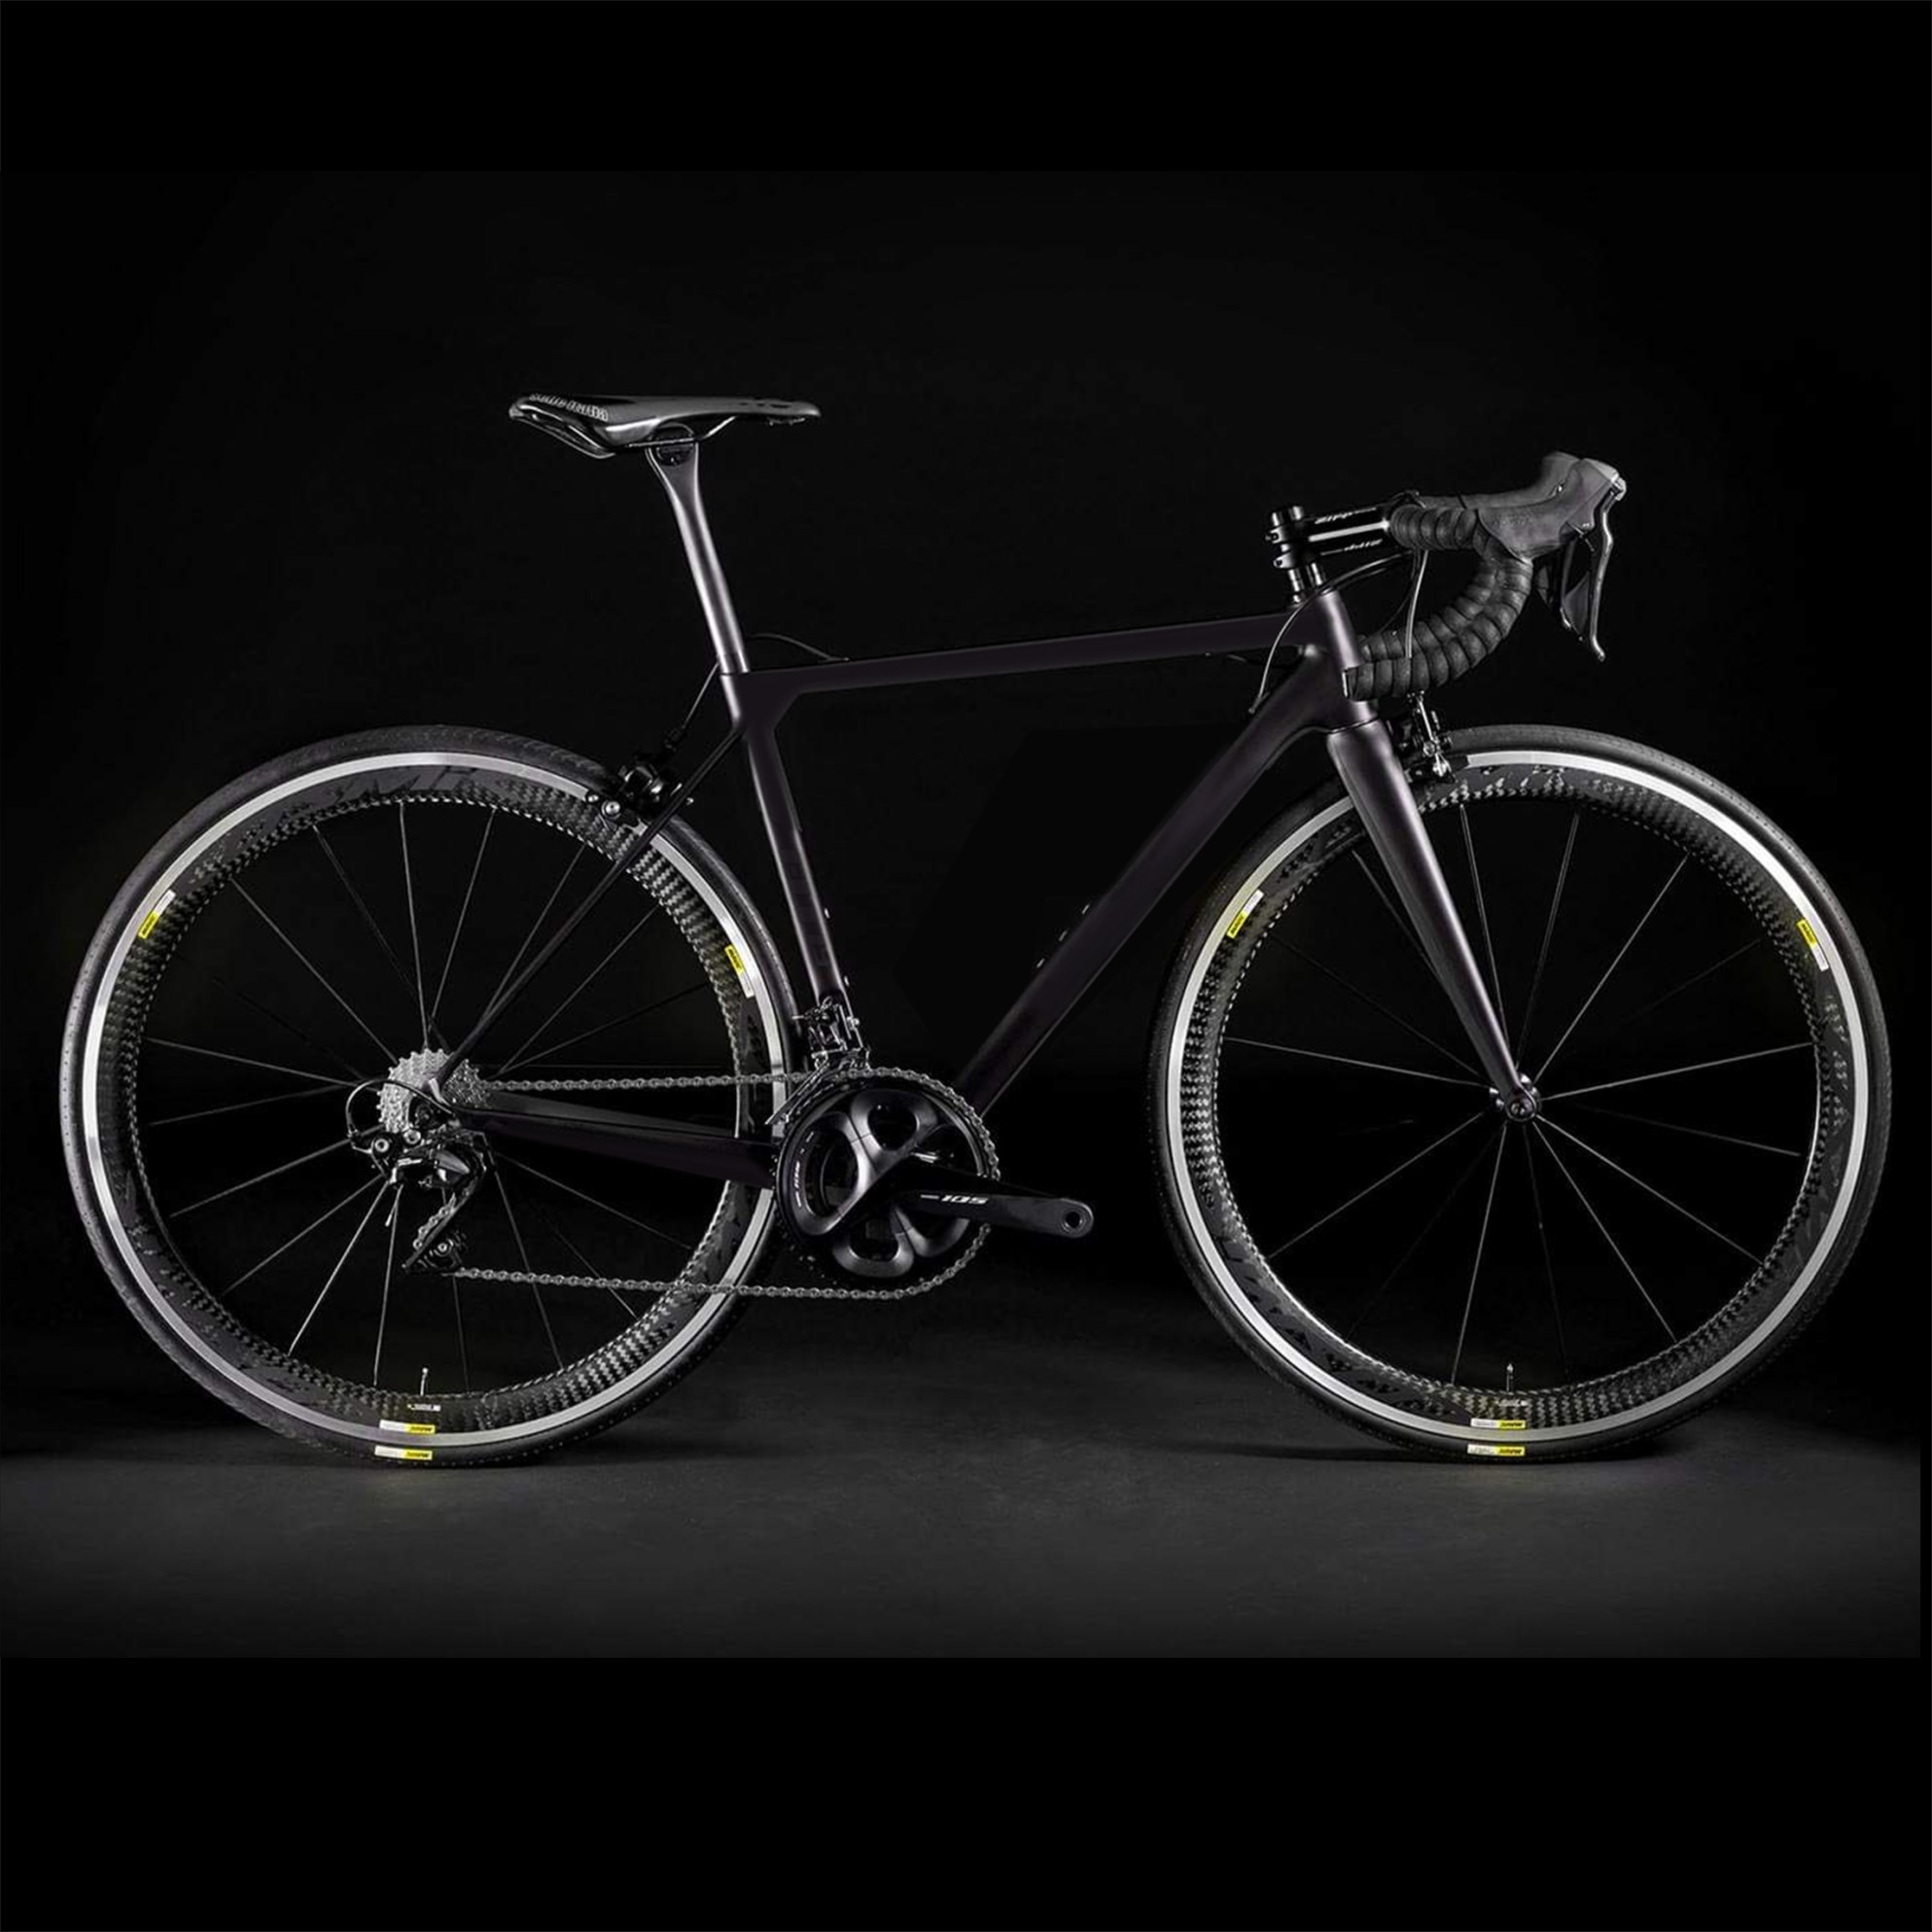 2020 Carbon Road font b bike b font Complete Bicycle Carbon with R7000 groupset 11 speed